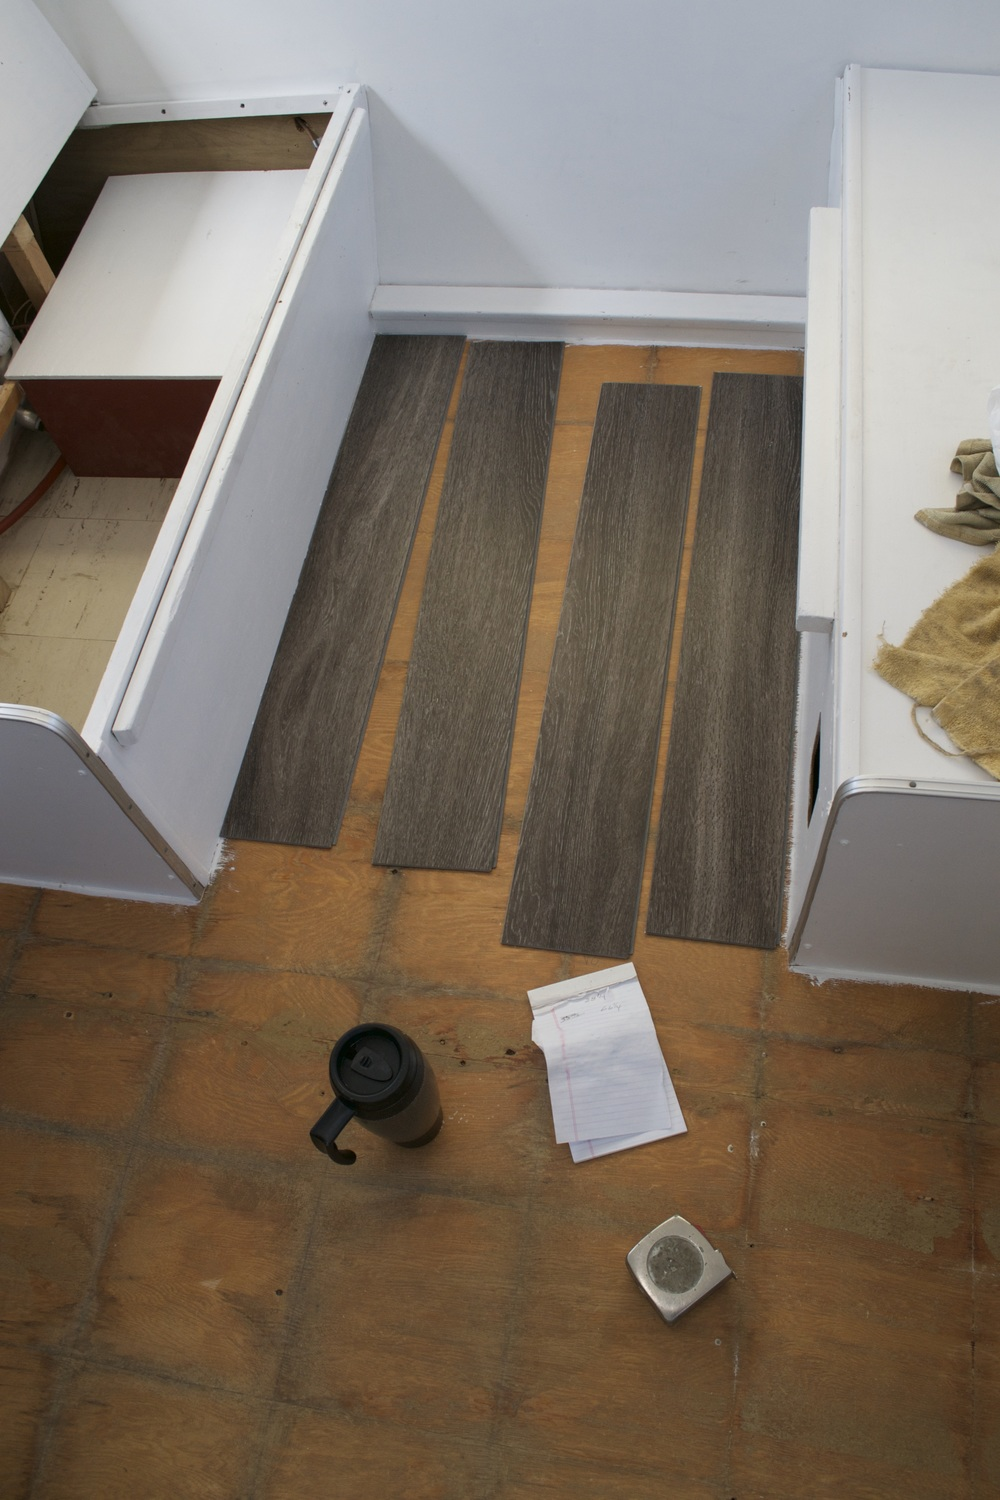 Reasons to install vinyl plank flooring in your trailer or rv required tools measuring tape flooring coffee scratch pad dailygadgetfo Images